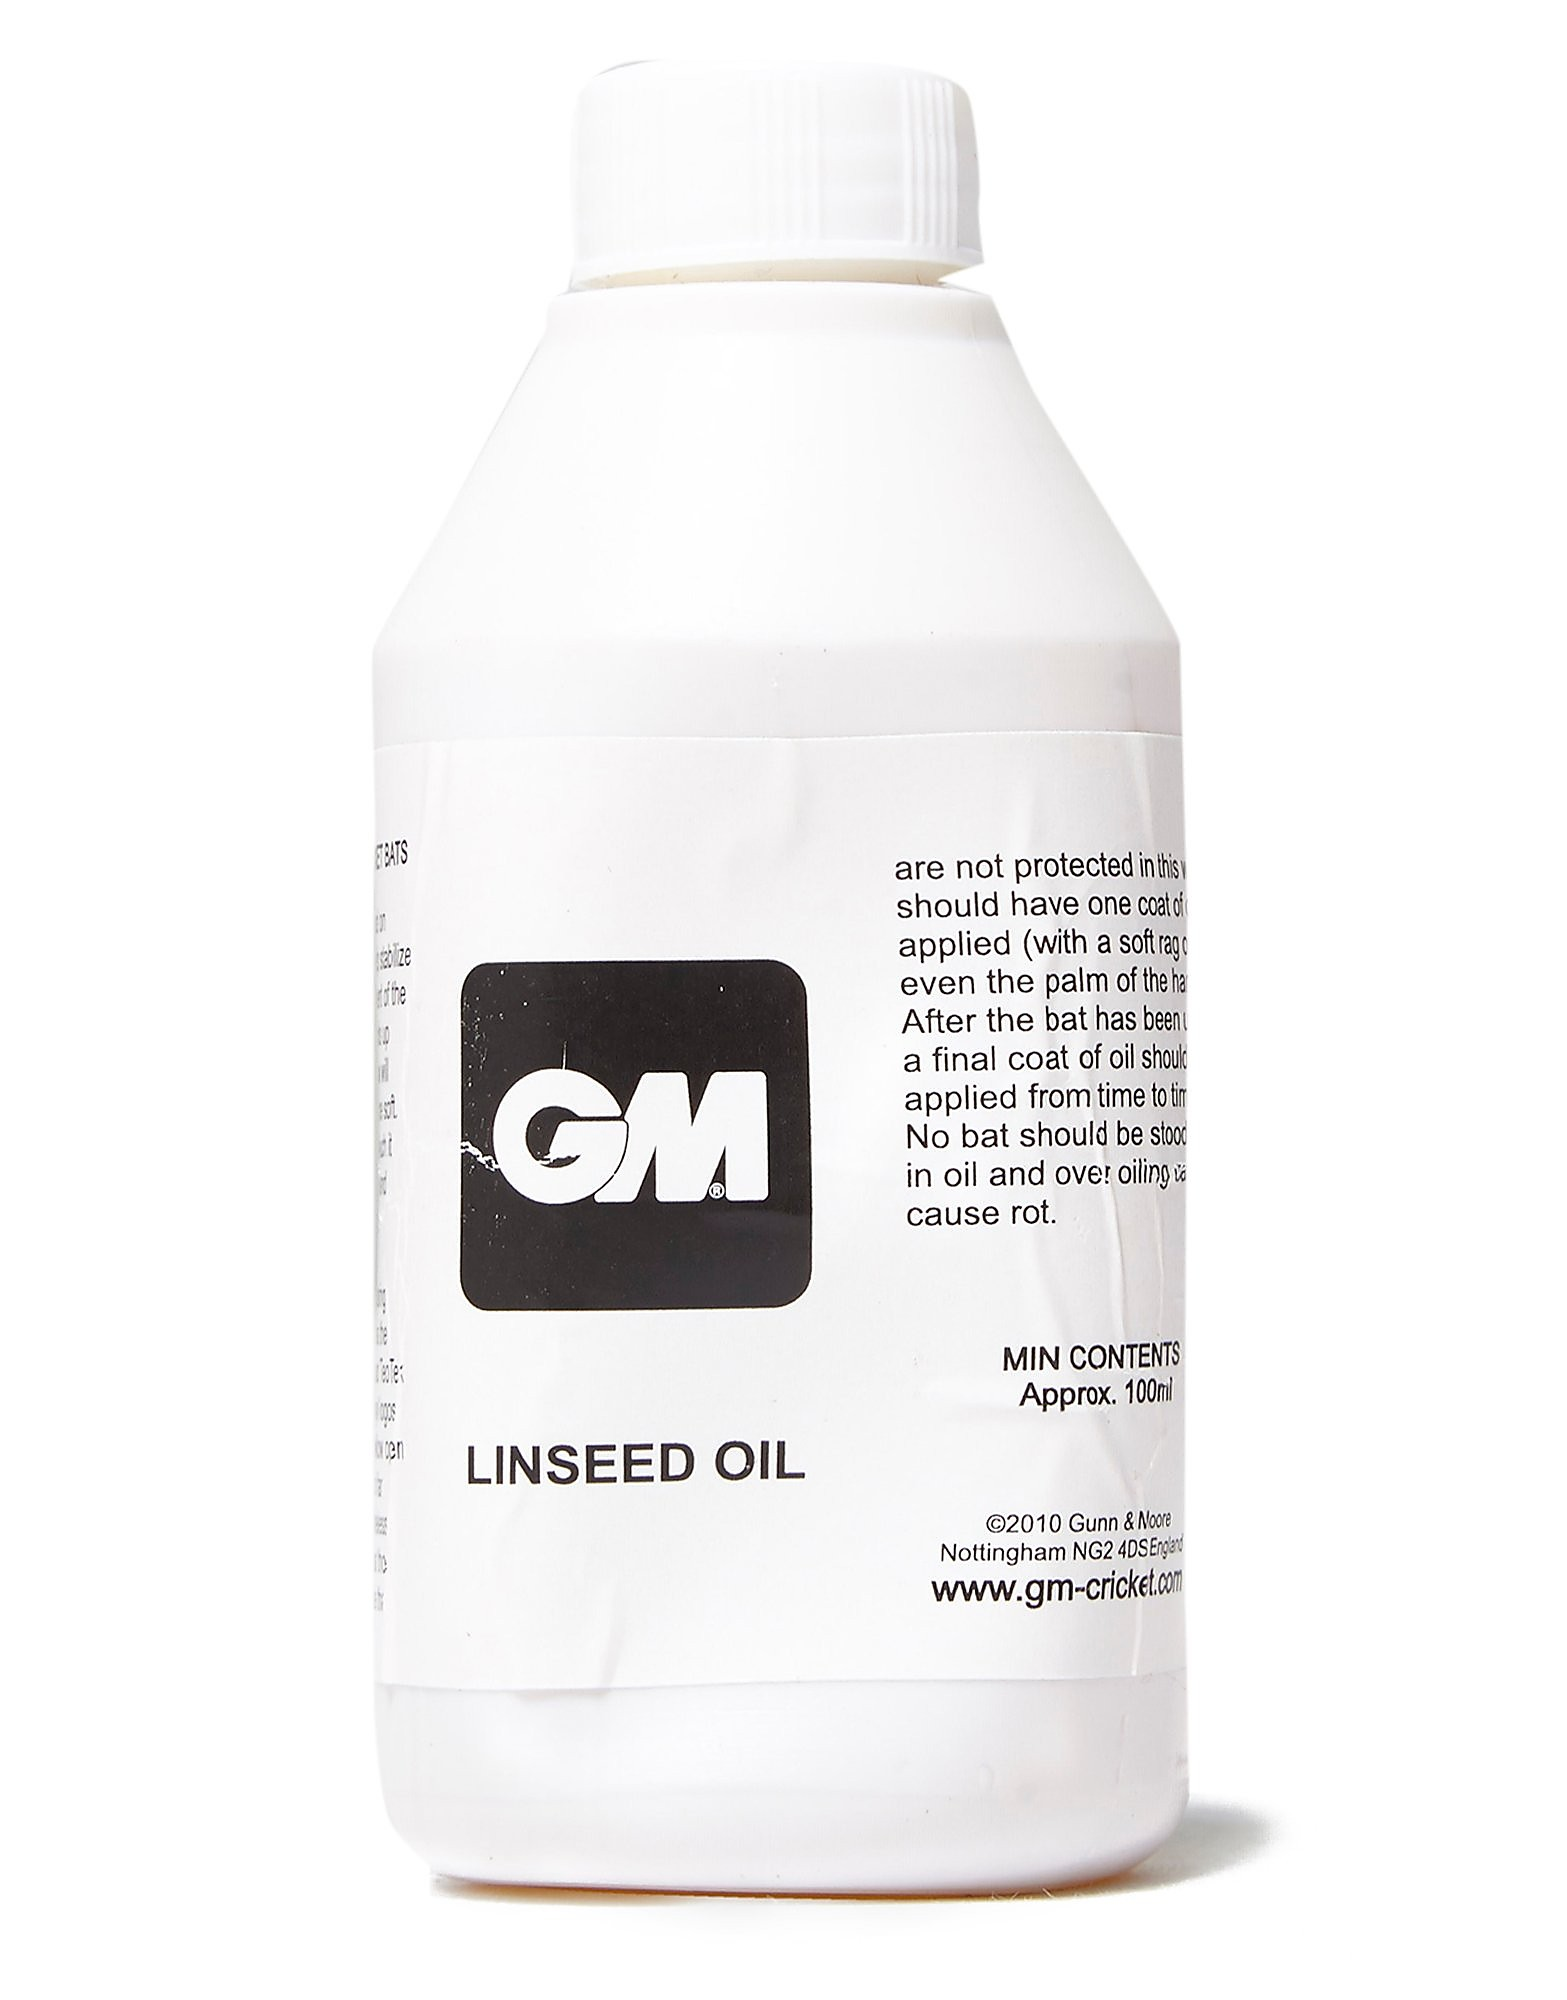 Gunn & Moore Cricket Linseed Oil